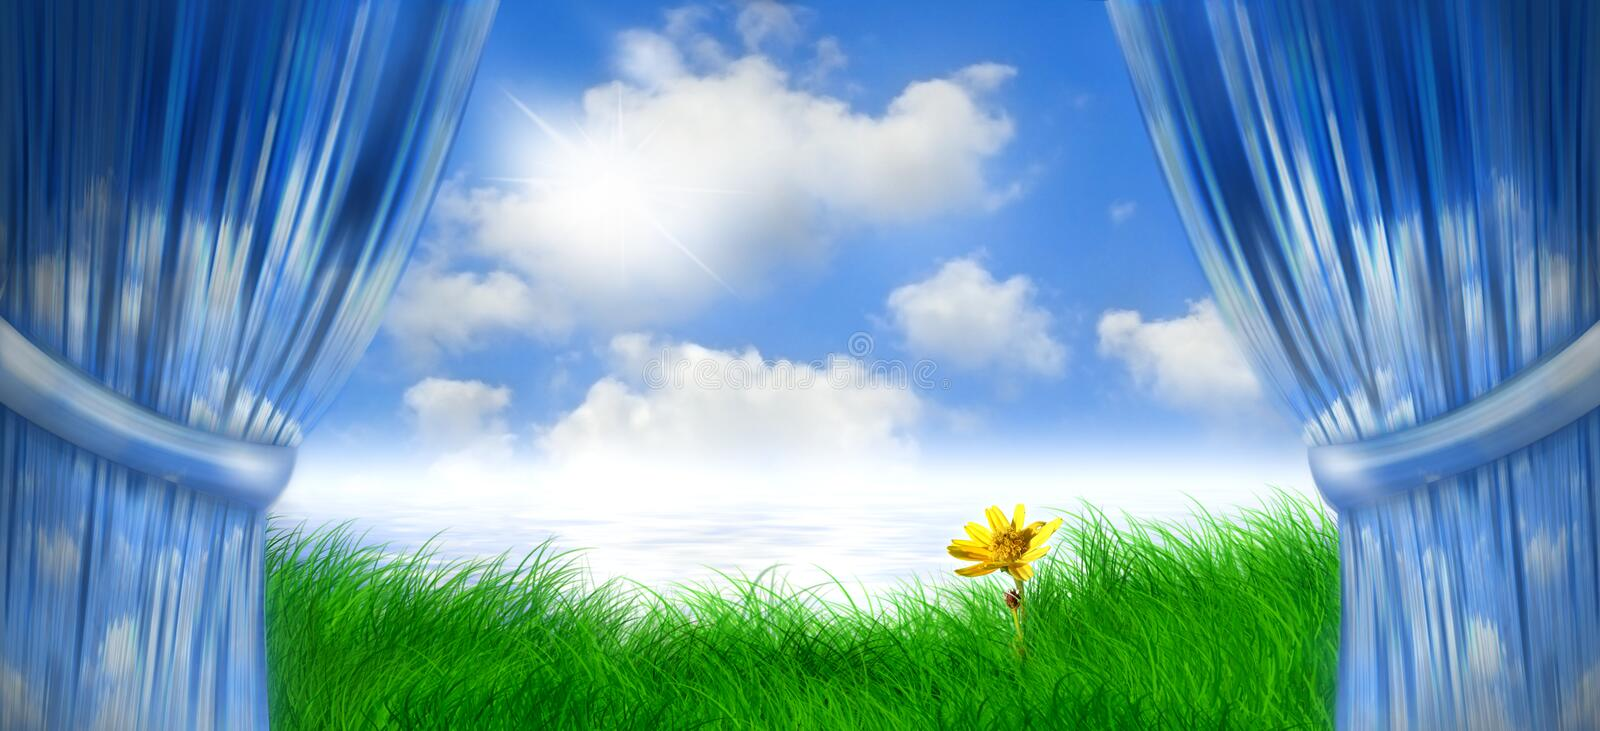 Spring day daisey. Cloudy curtains part to welcome a spring bright sunny day on a grassy field with one lone flower